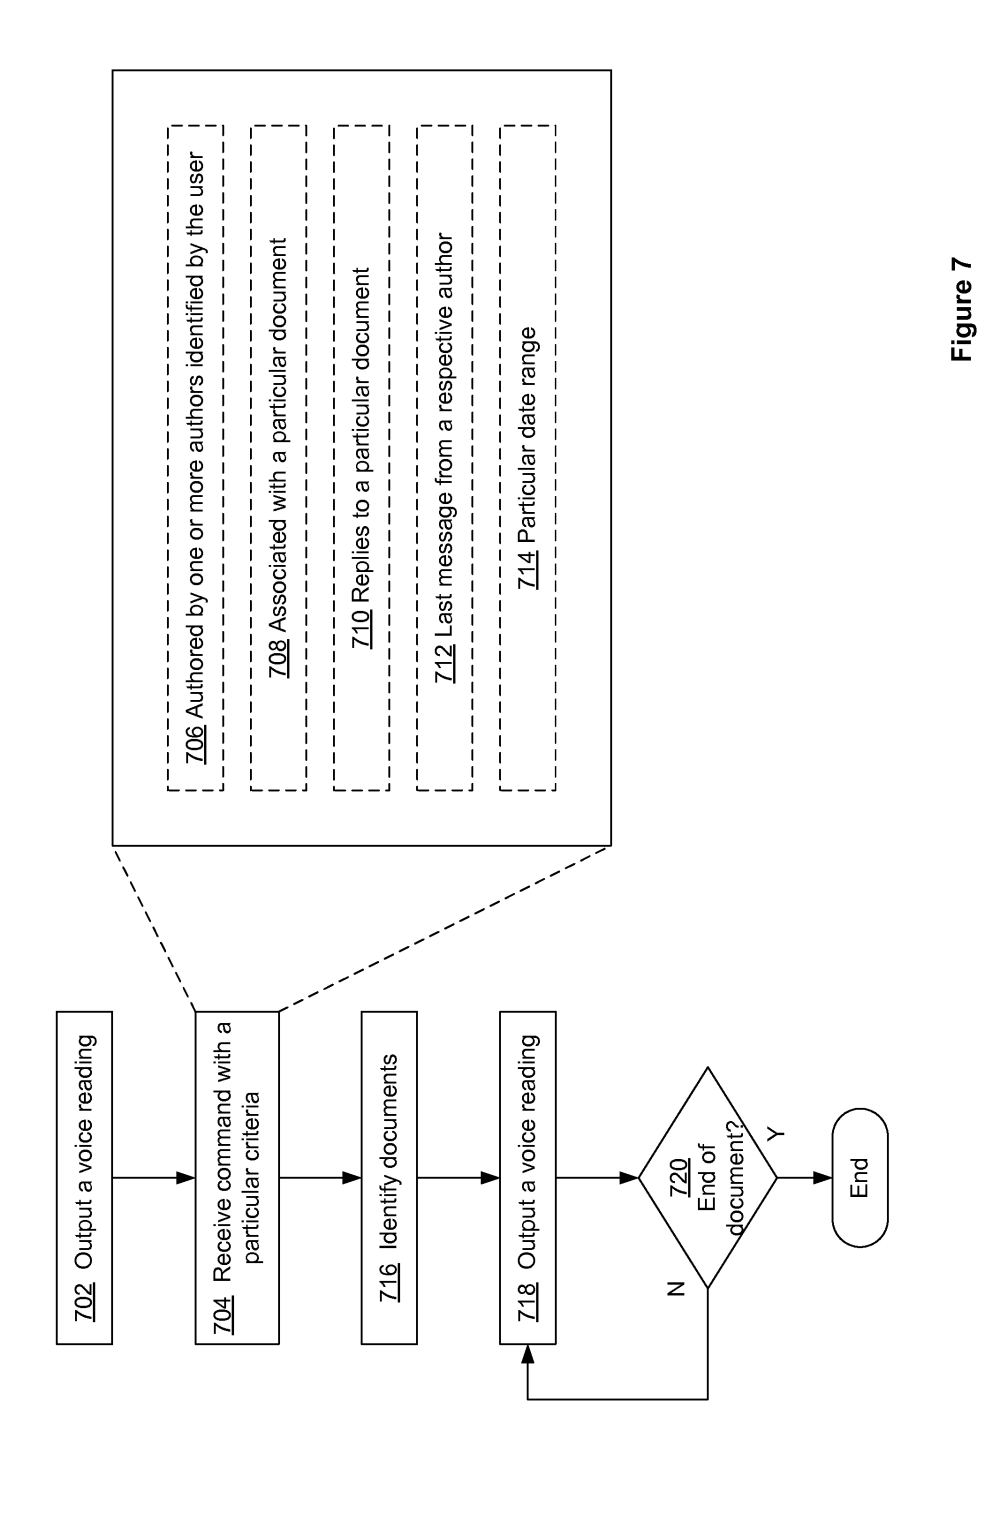 medium resolution of  us9495129b2 device method and user interface for voice activated on